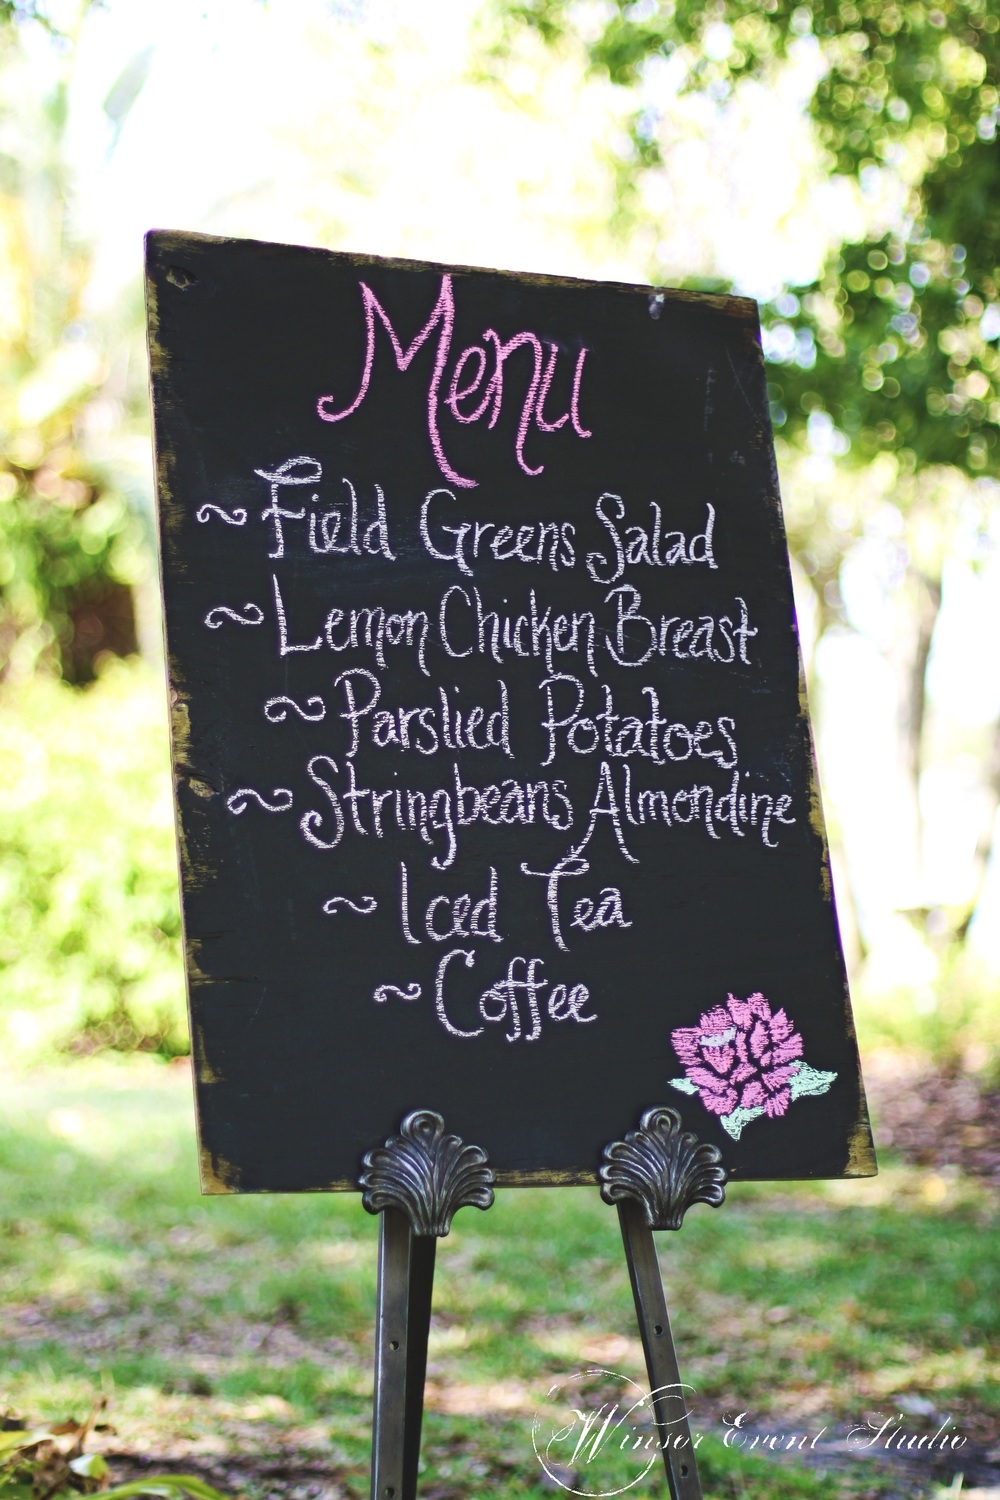 The couple's Southern homestyle dinner menu was handwritten on a chalkboard and easel